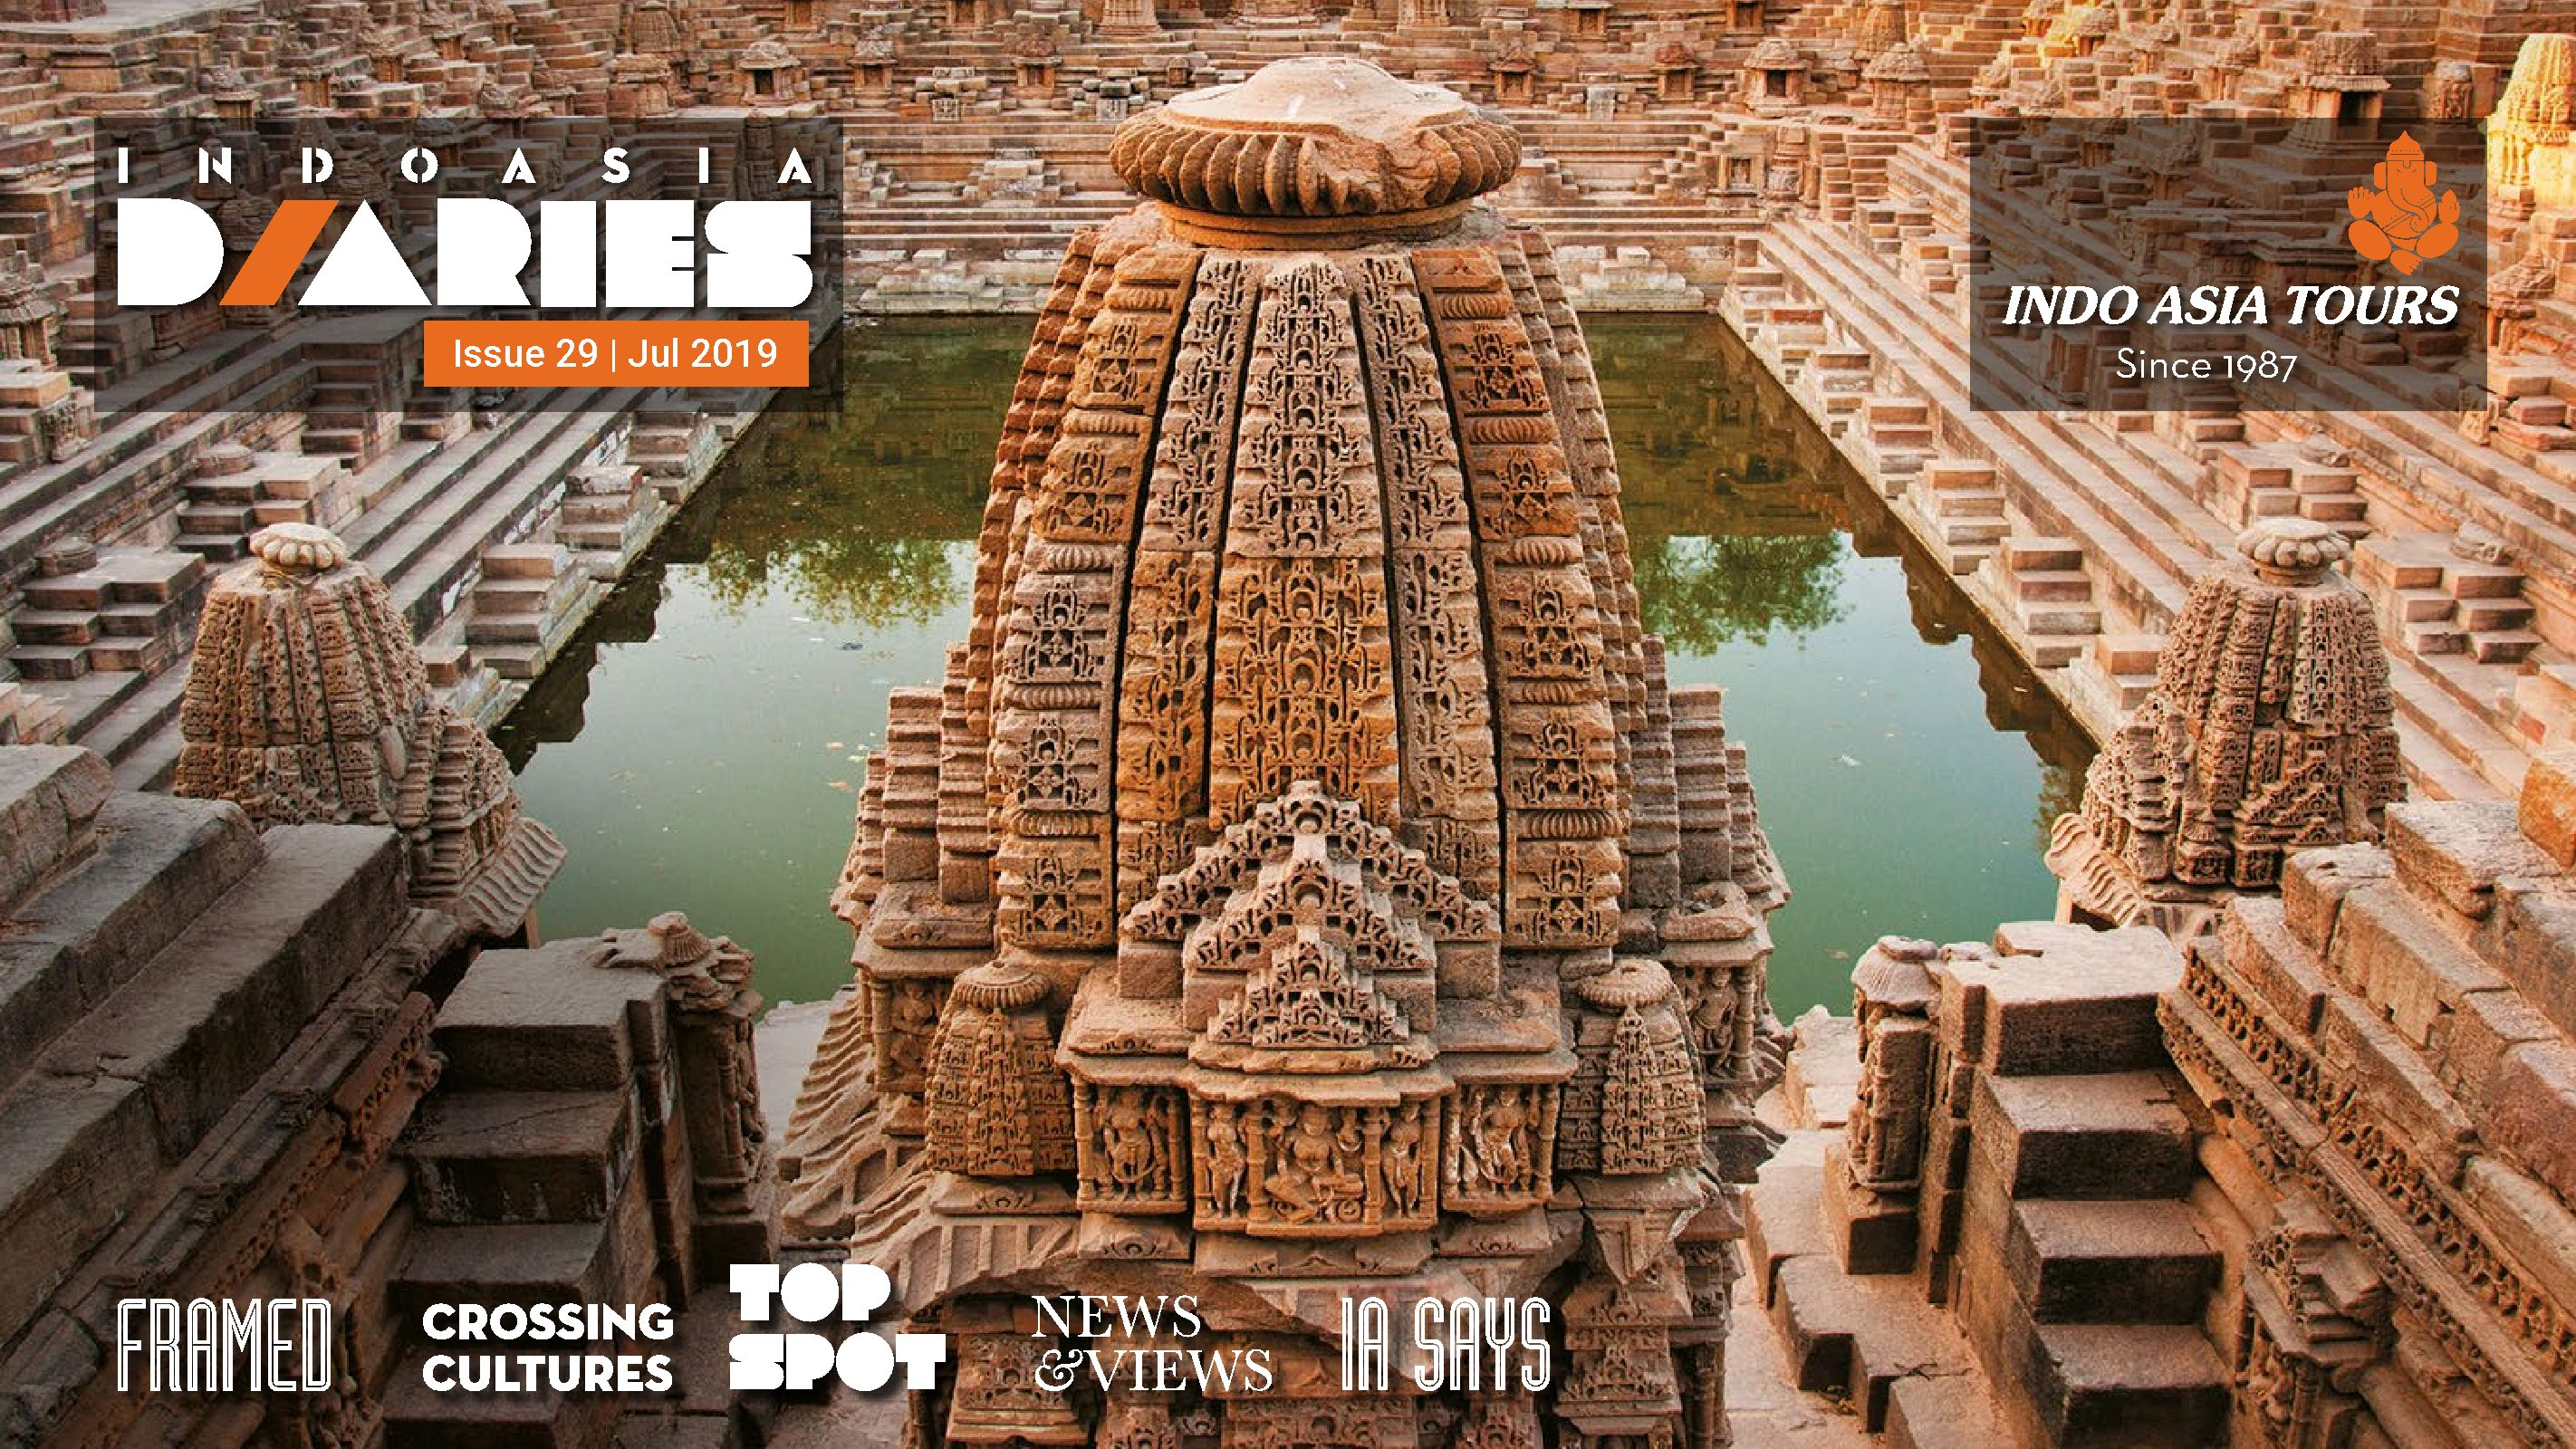 INDOASIADiary-July'19 – Tailor made tour package India